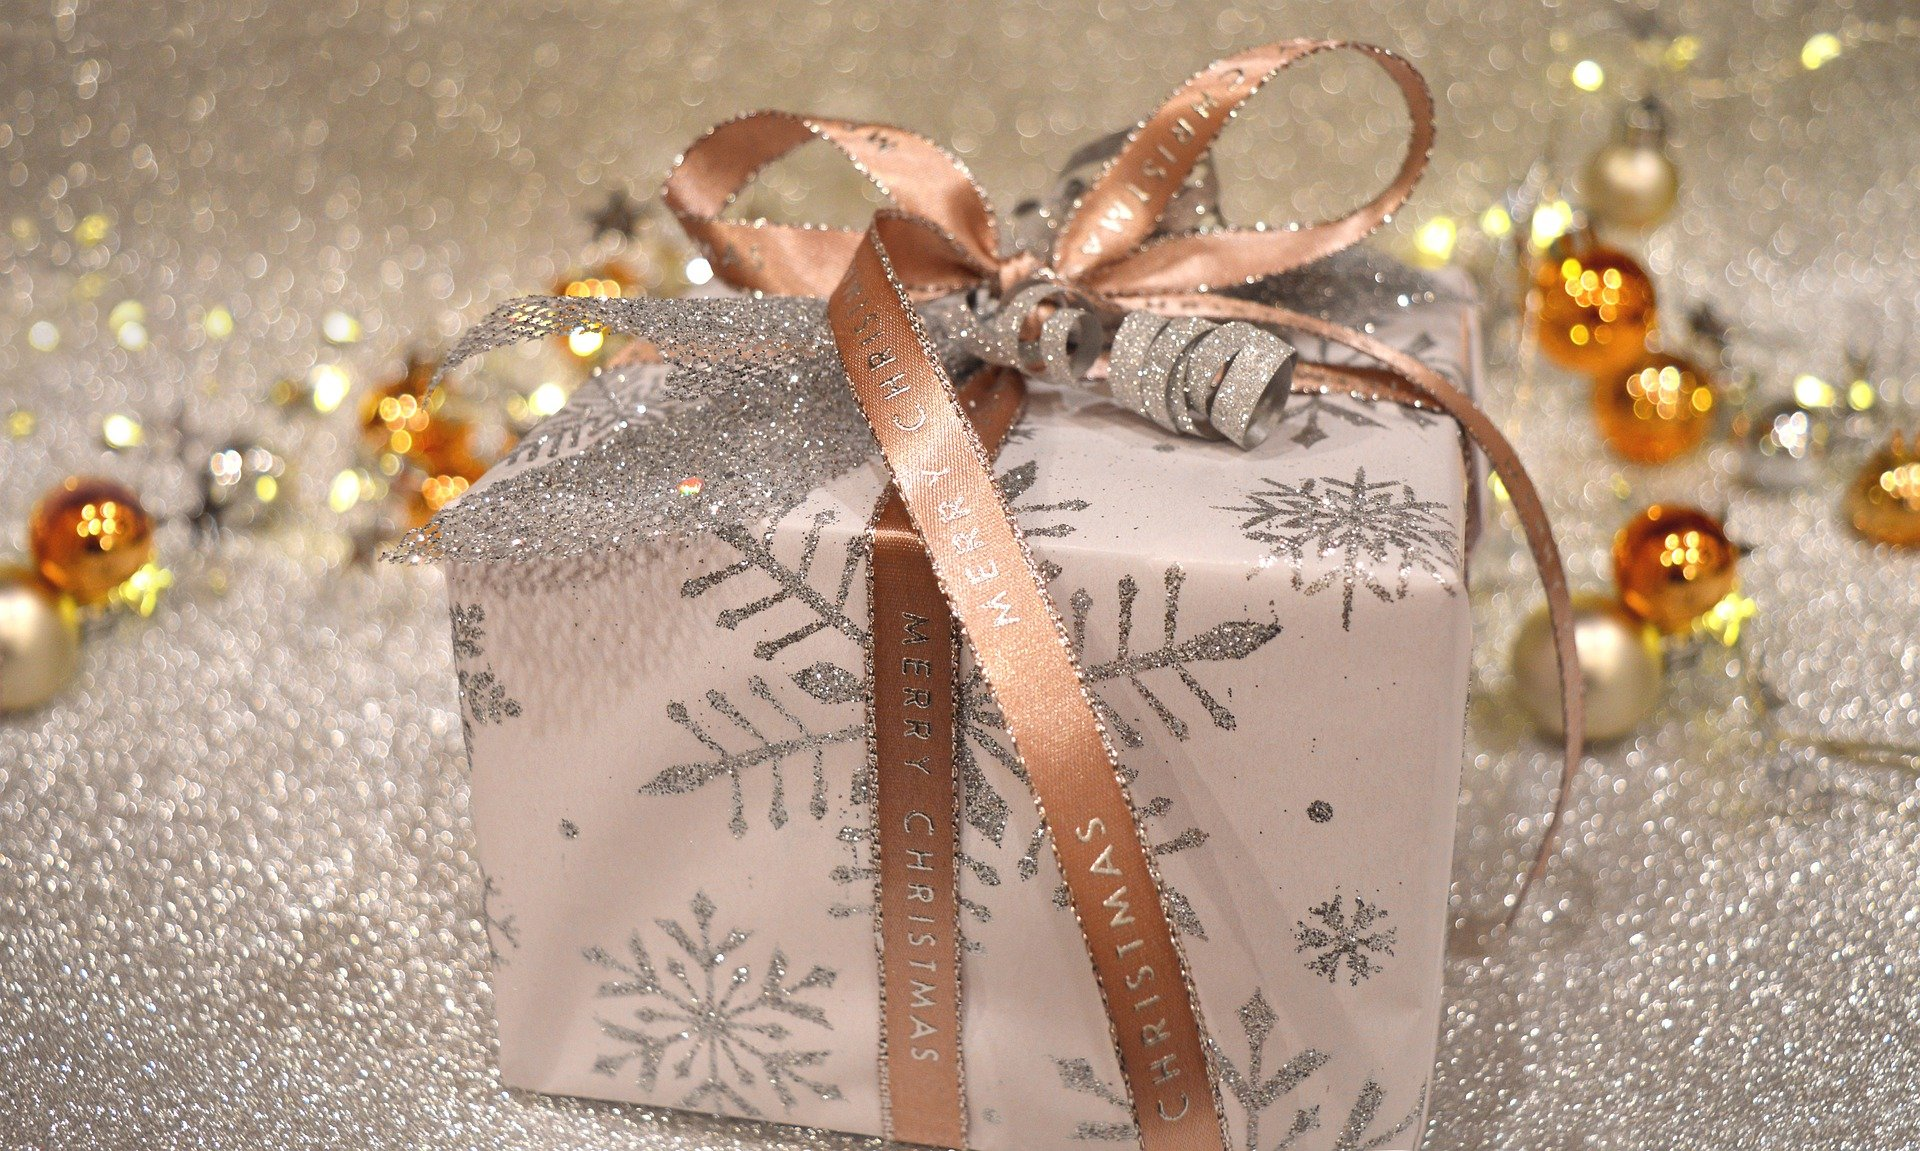 Gifts to employees can be tax-free